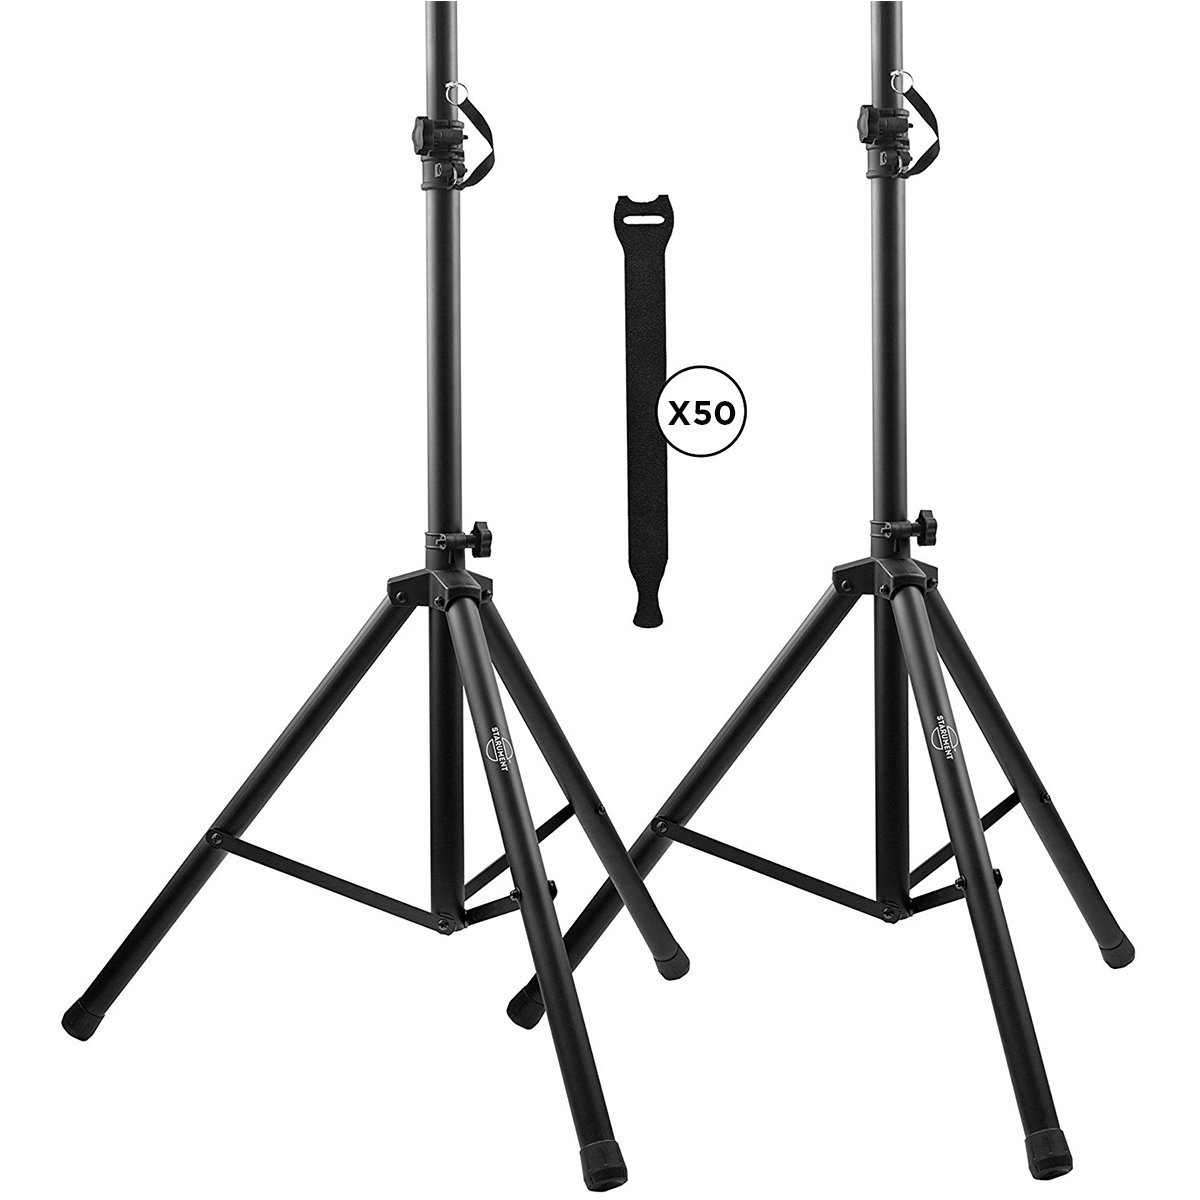 Pa Speaker Stands Pair Pro Adjustable Height with 50 Cable Ties Kit To Secure Cable to stand (2 Stands) 6ft Tripod Speaker stands by Starument